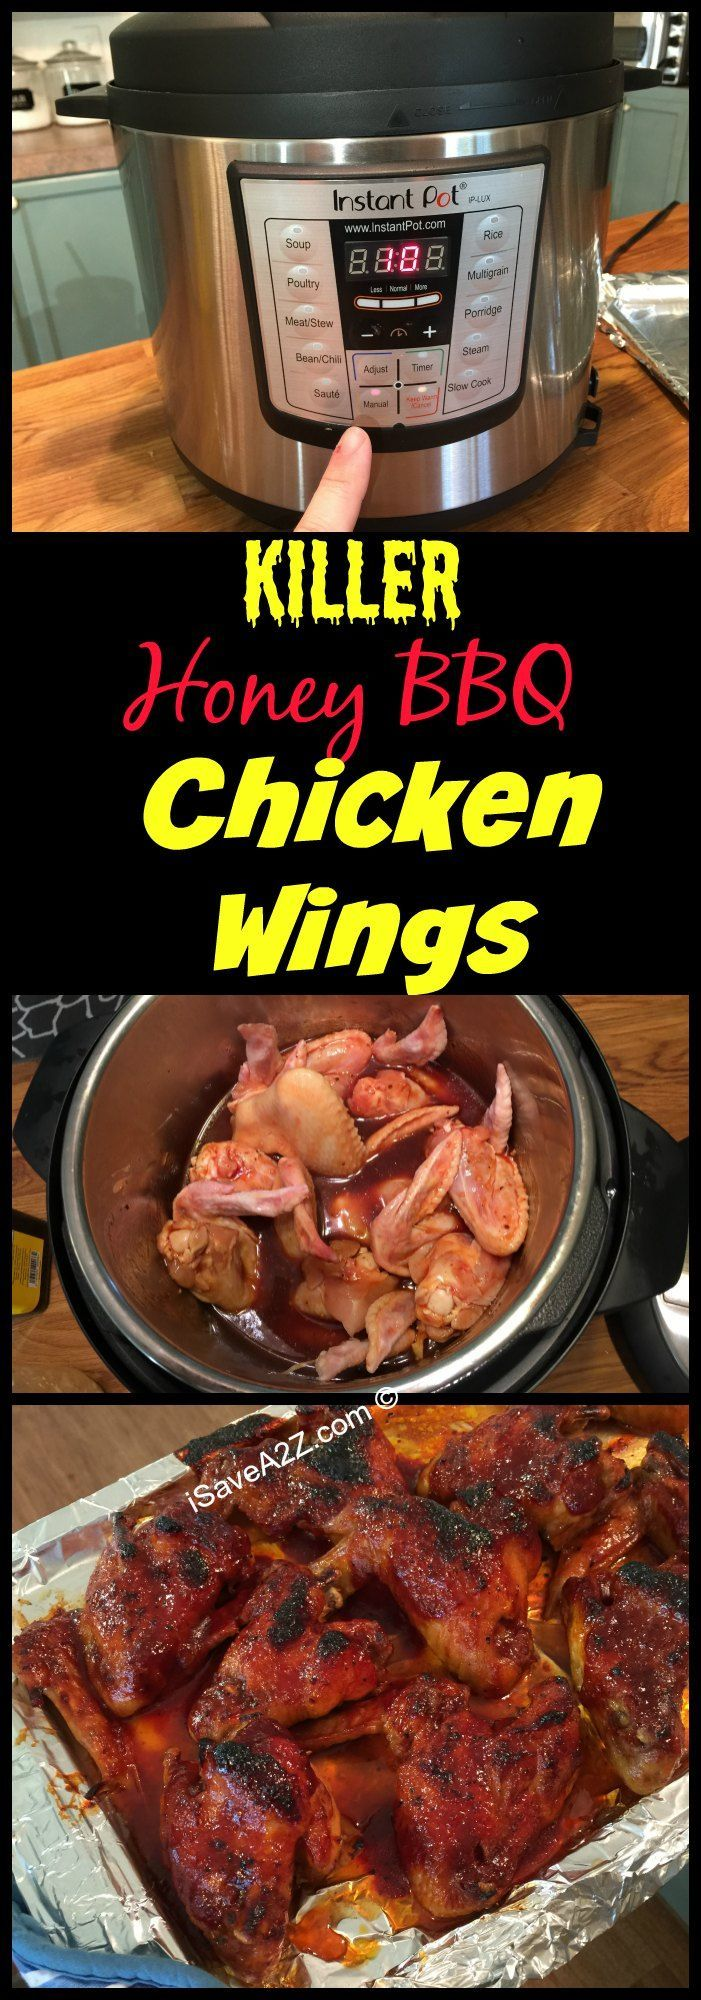 These are some KILLER Honey BBQ Chicken WINGS!!! Instant Pot Recipes: Honey BBQ Wings made in an Electric Pressure Cooker - iSaveA2Z.com